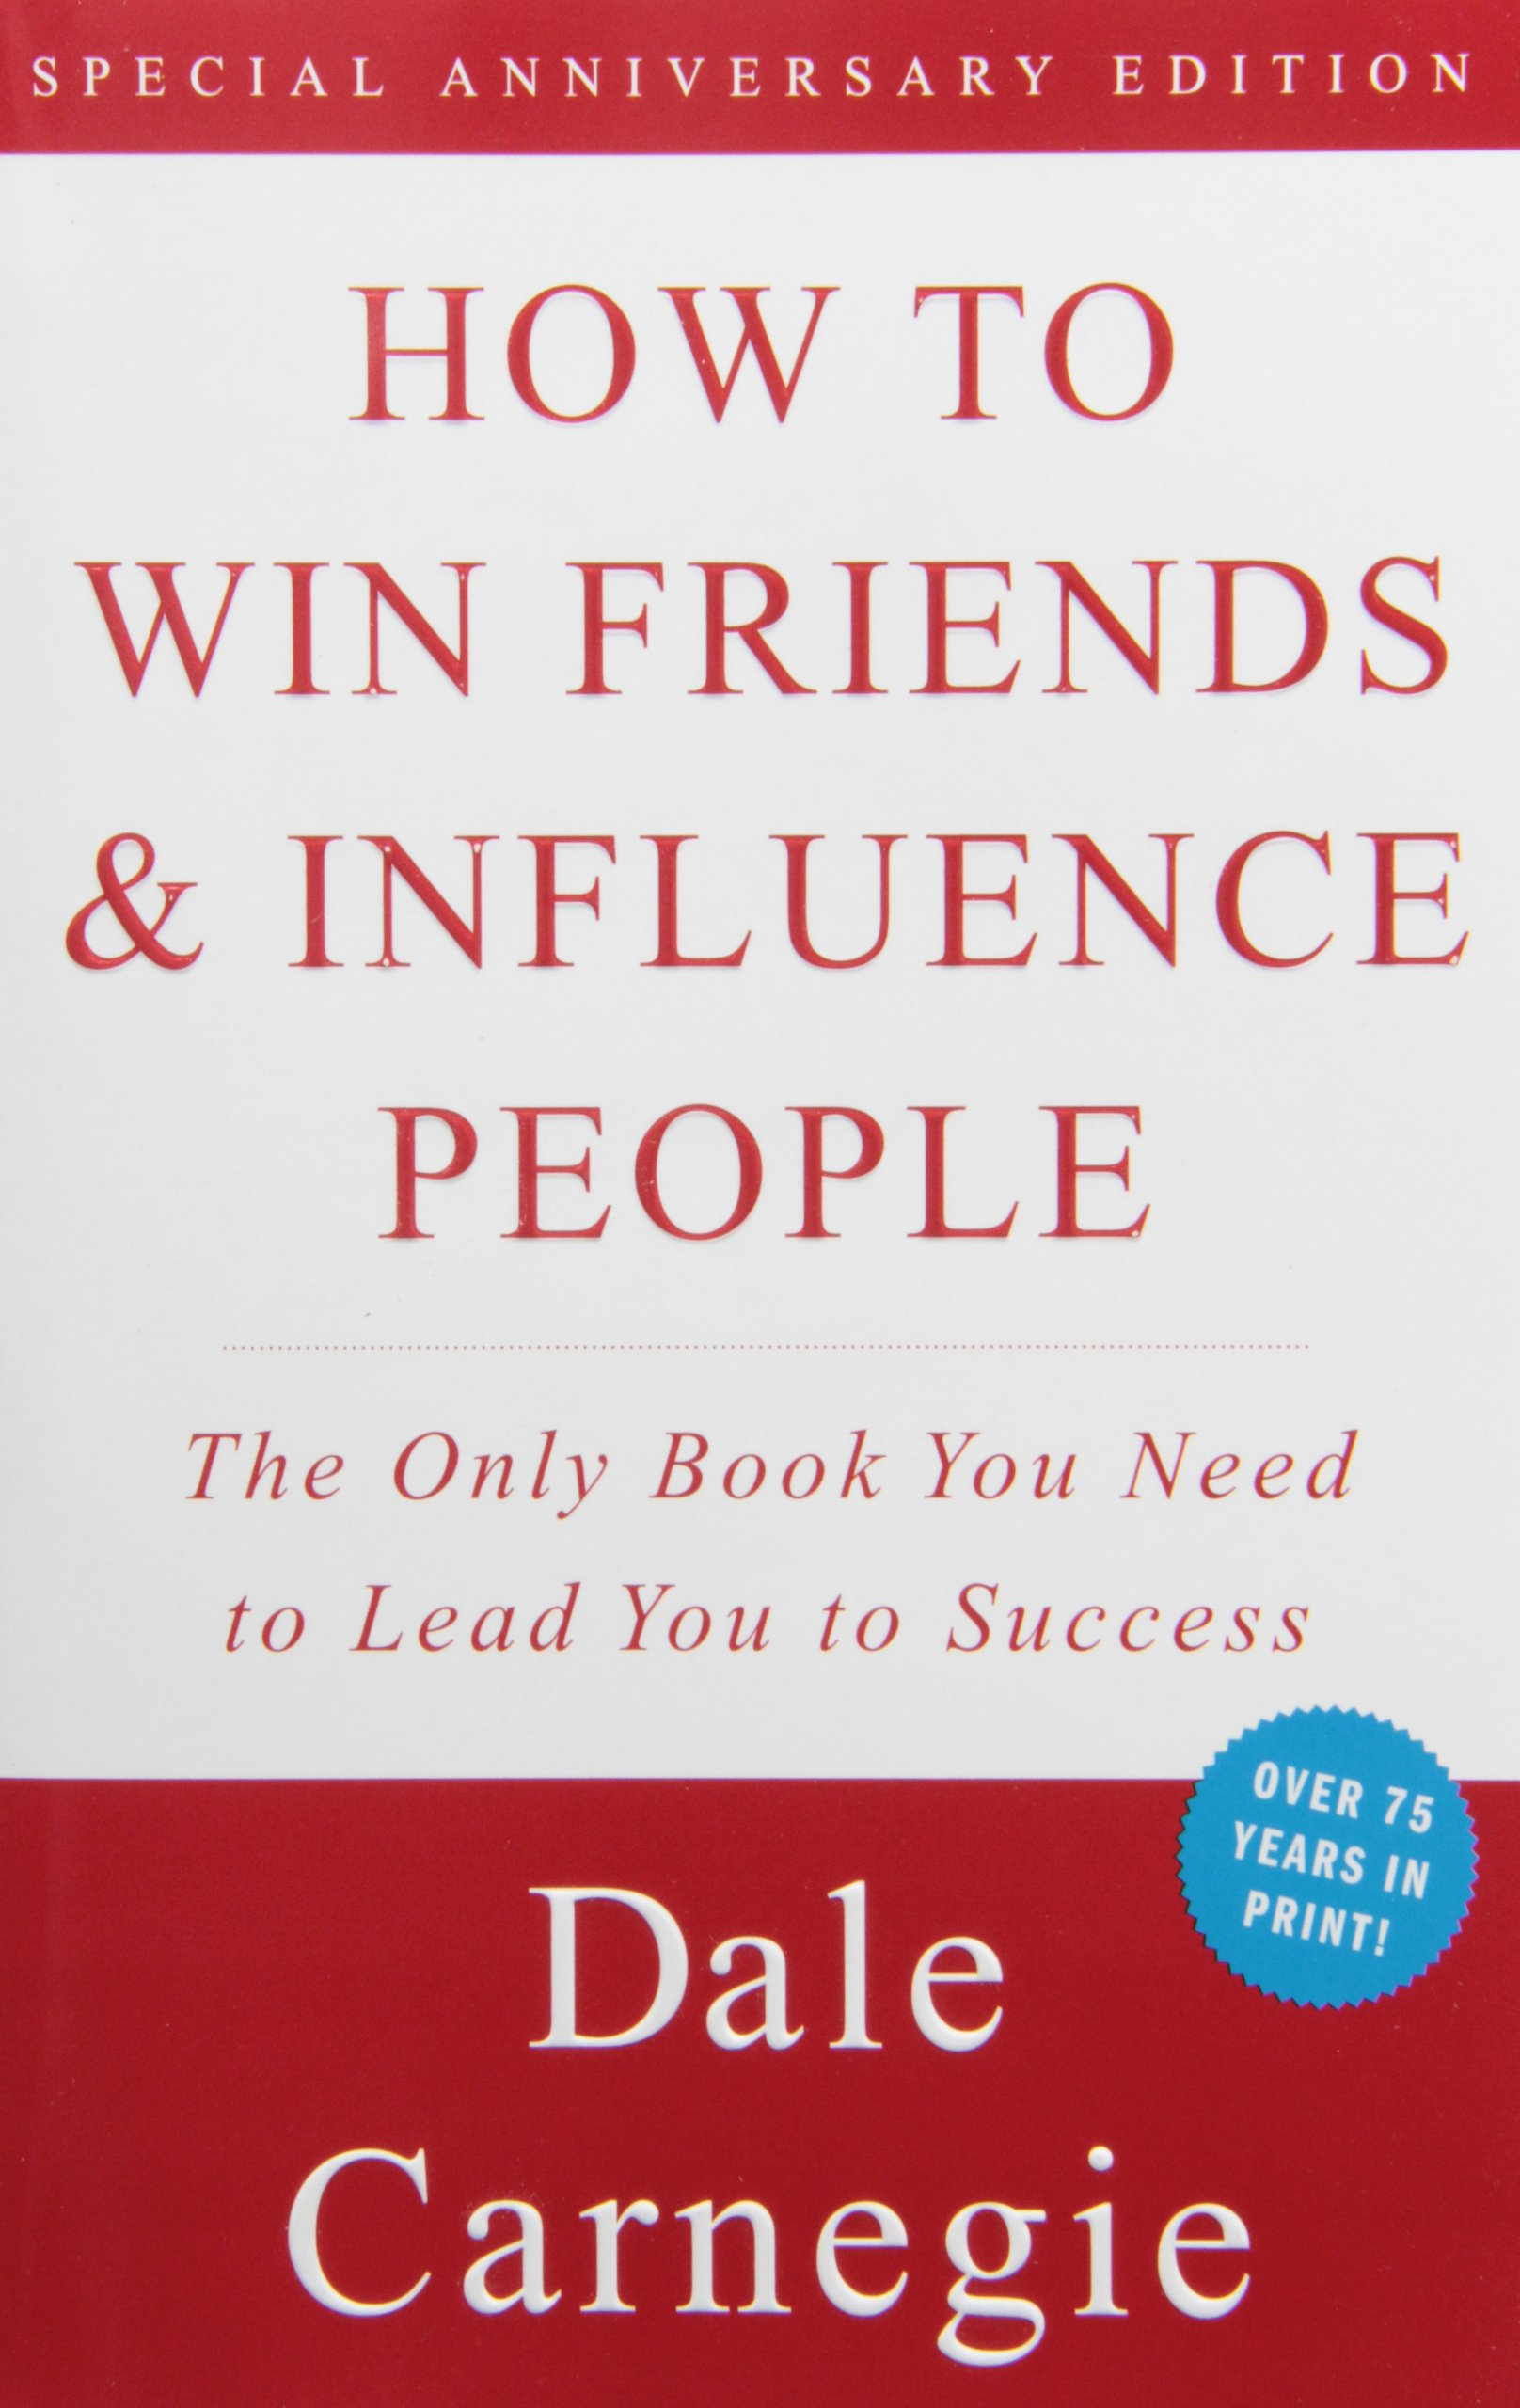 how-to-win-influence-people-book-cover